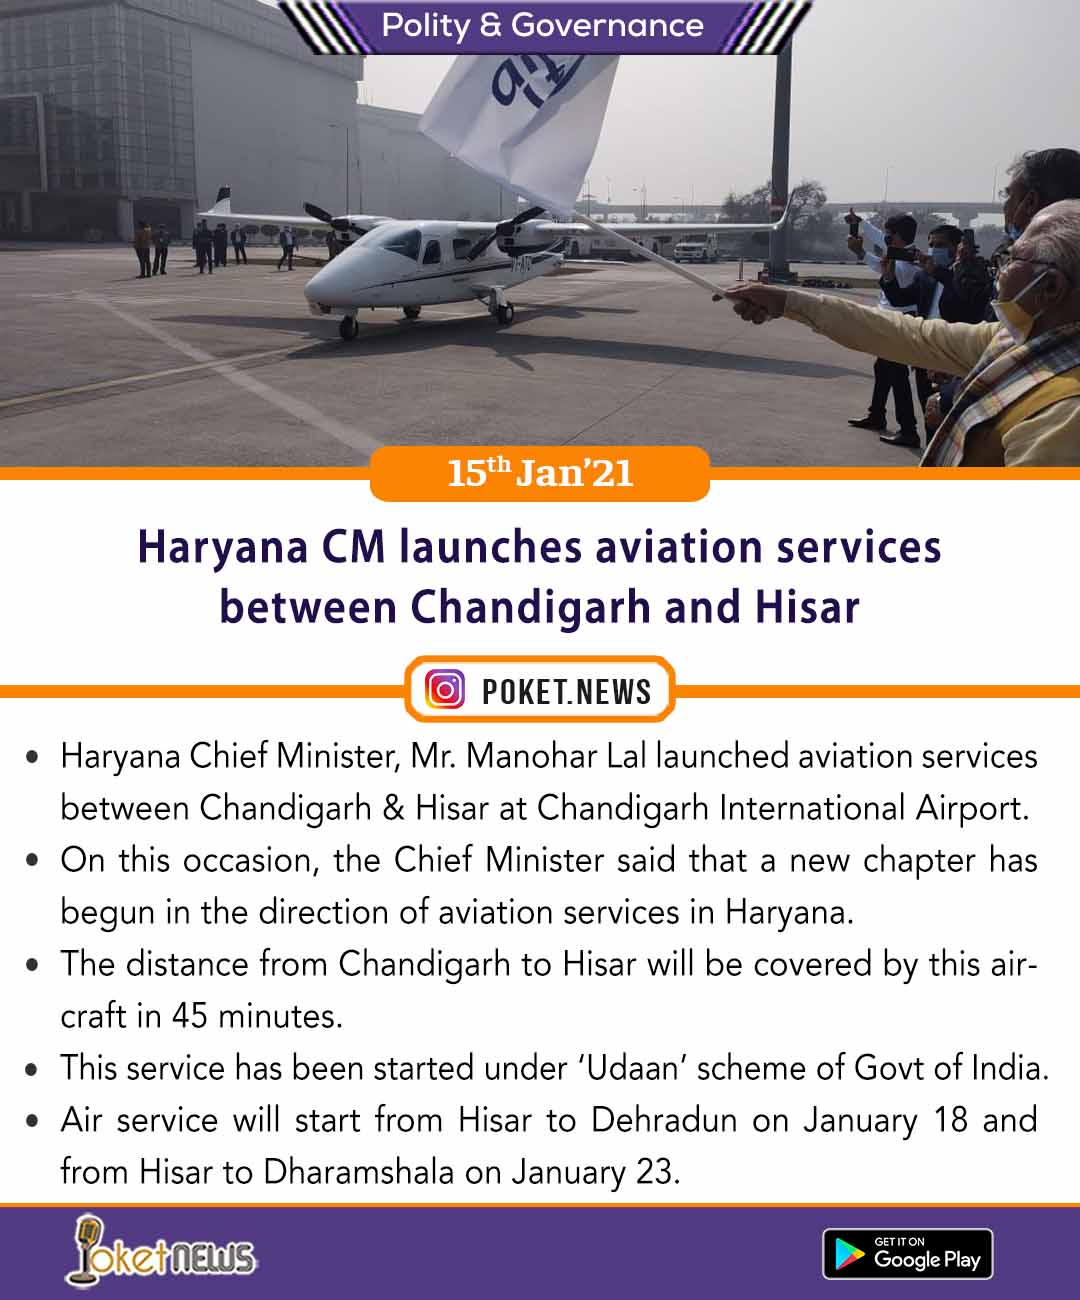 Haryana CM launches aviation services between Chandigarh and Hisar